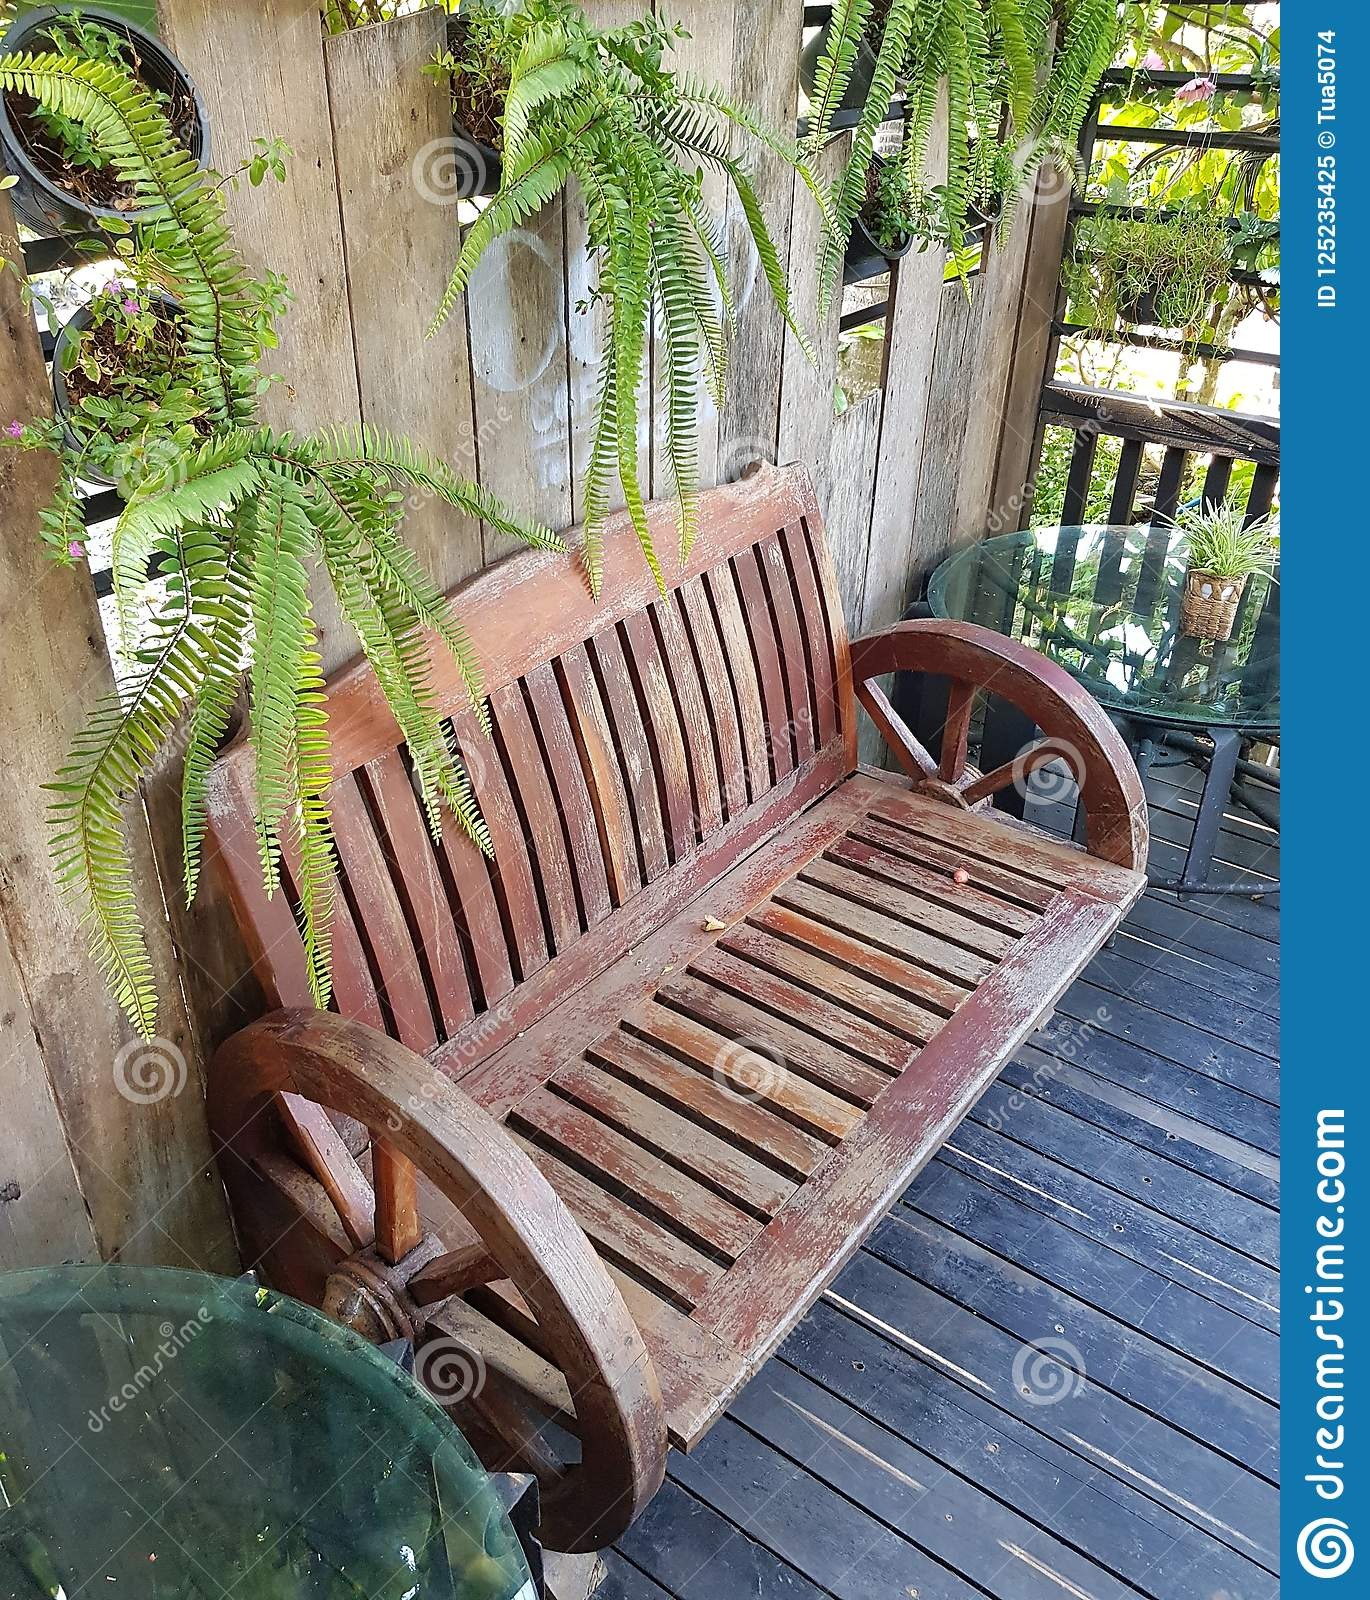 Stupendous Wooden Bench In Garden Stock Image Image Of Chair Family Alphanode Cool Chair Designs And Ideas Alphanodeonline